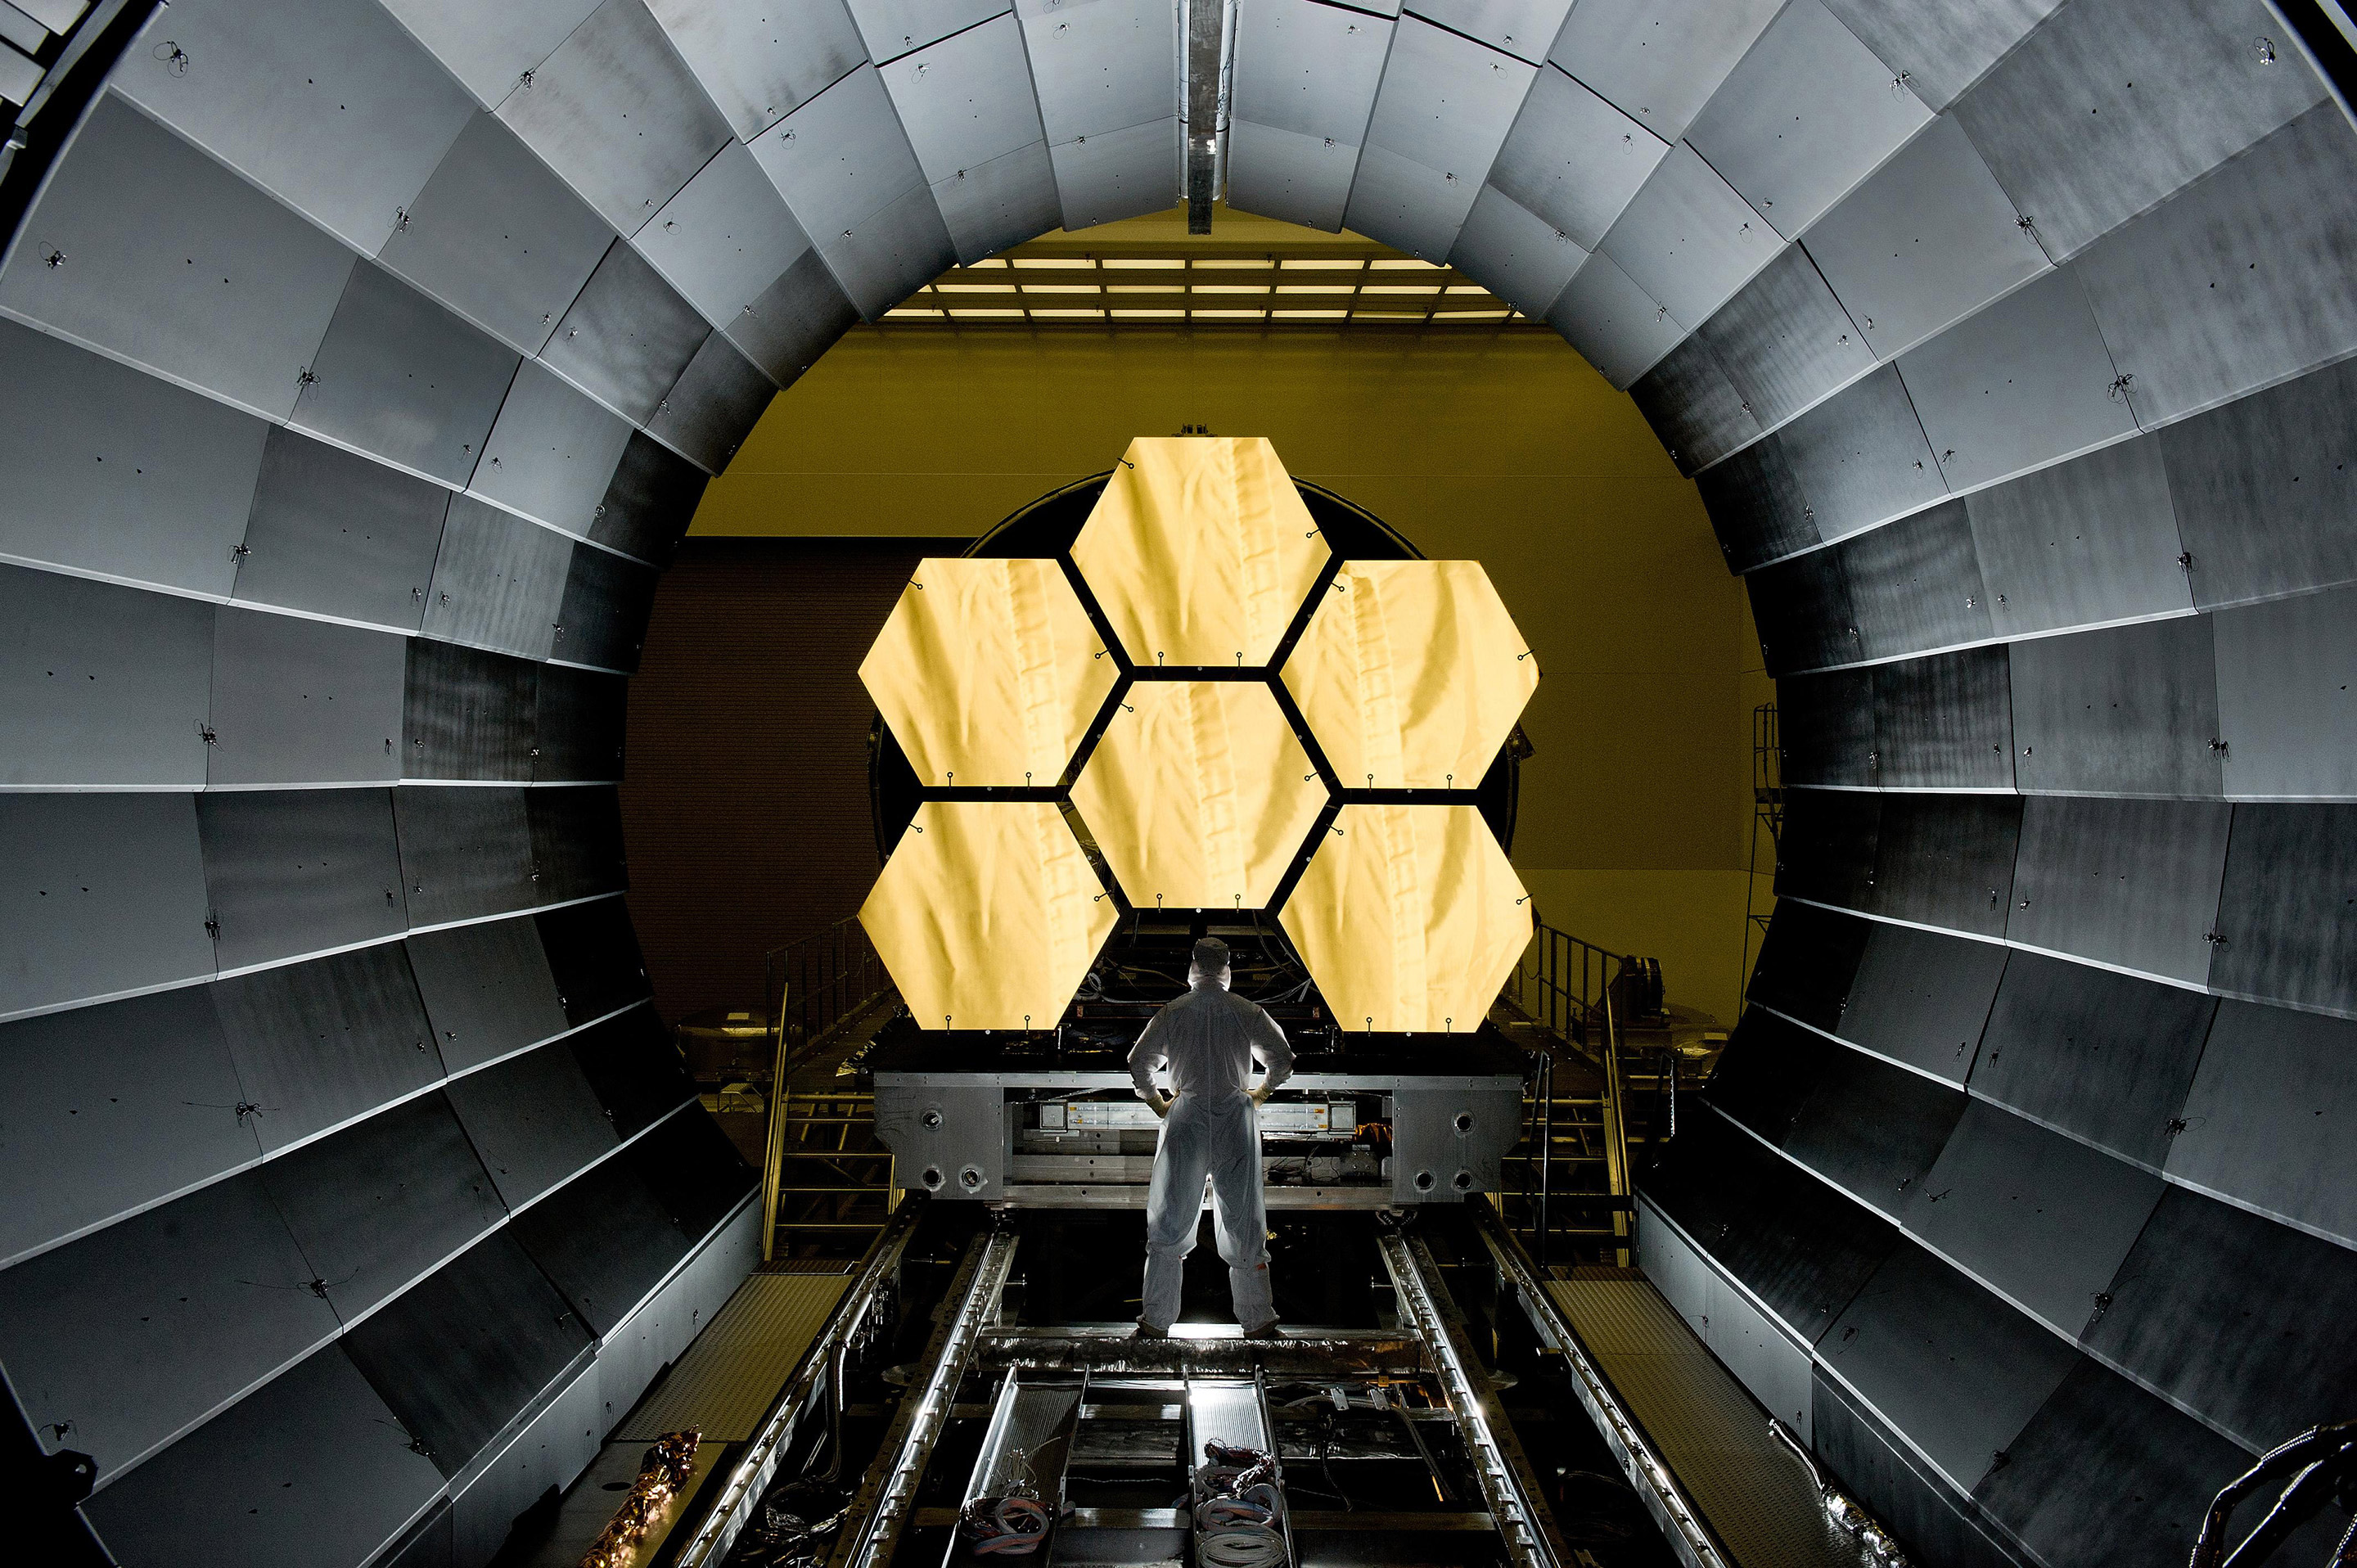 NASA engineer Ernie Wright looks on as the first six flight ready James Webb Space Telescope's primary mirror segments are prepped to begin final cryogenic testing at NASA's Marshall Space Flight Center. This represents the first six of 18 segments that will form the telescope's primary mirror. Photo: NASA/MSFC/David Higginbotham